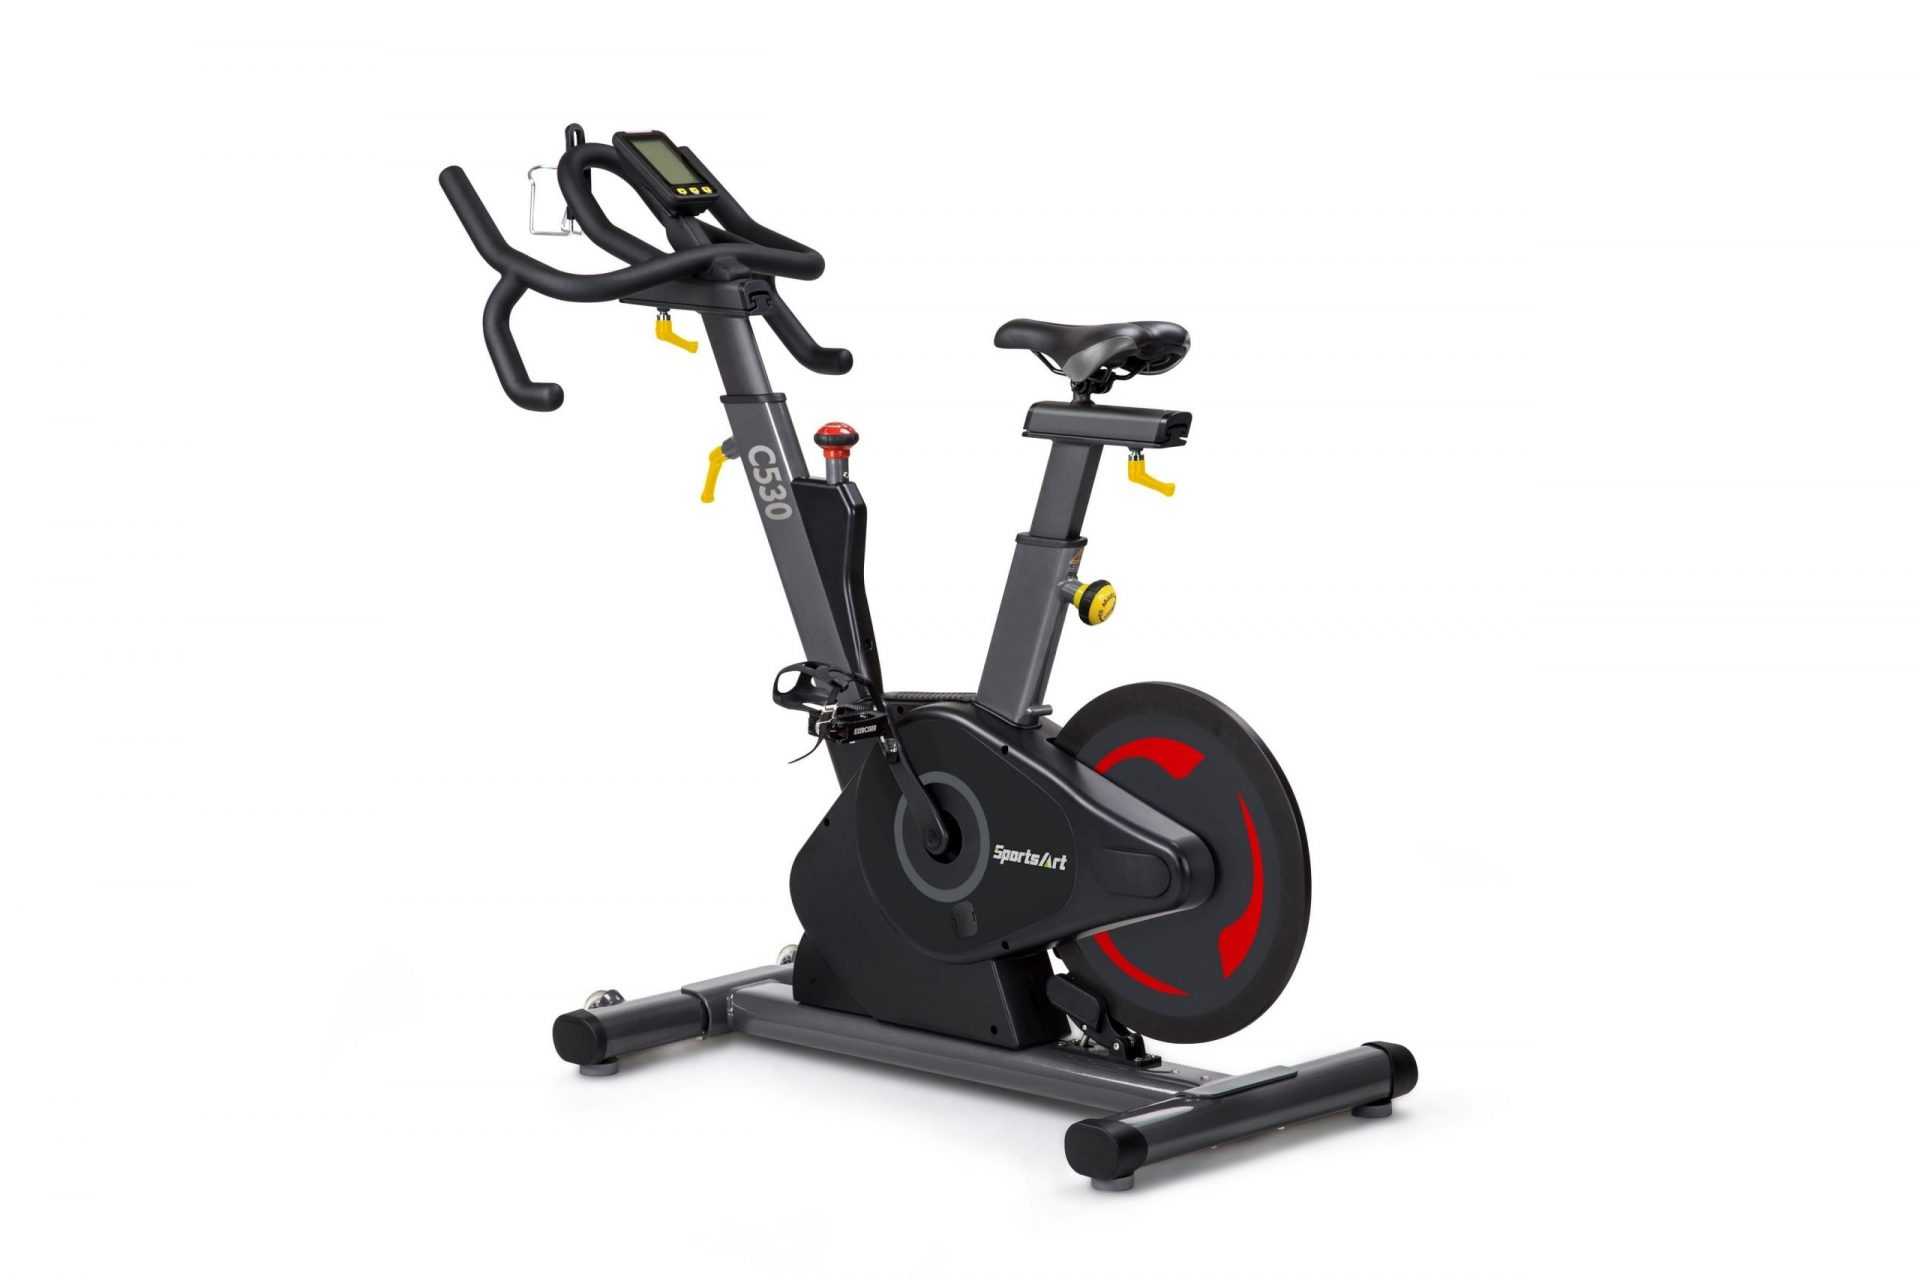 STATUS SERIES COMMERCIAL INDOOR CYCLE WITH REAR FLYWHEEL - SPORTSART (C530)